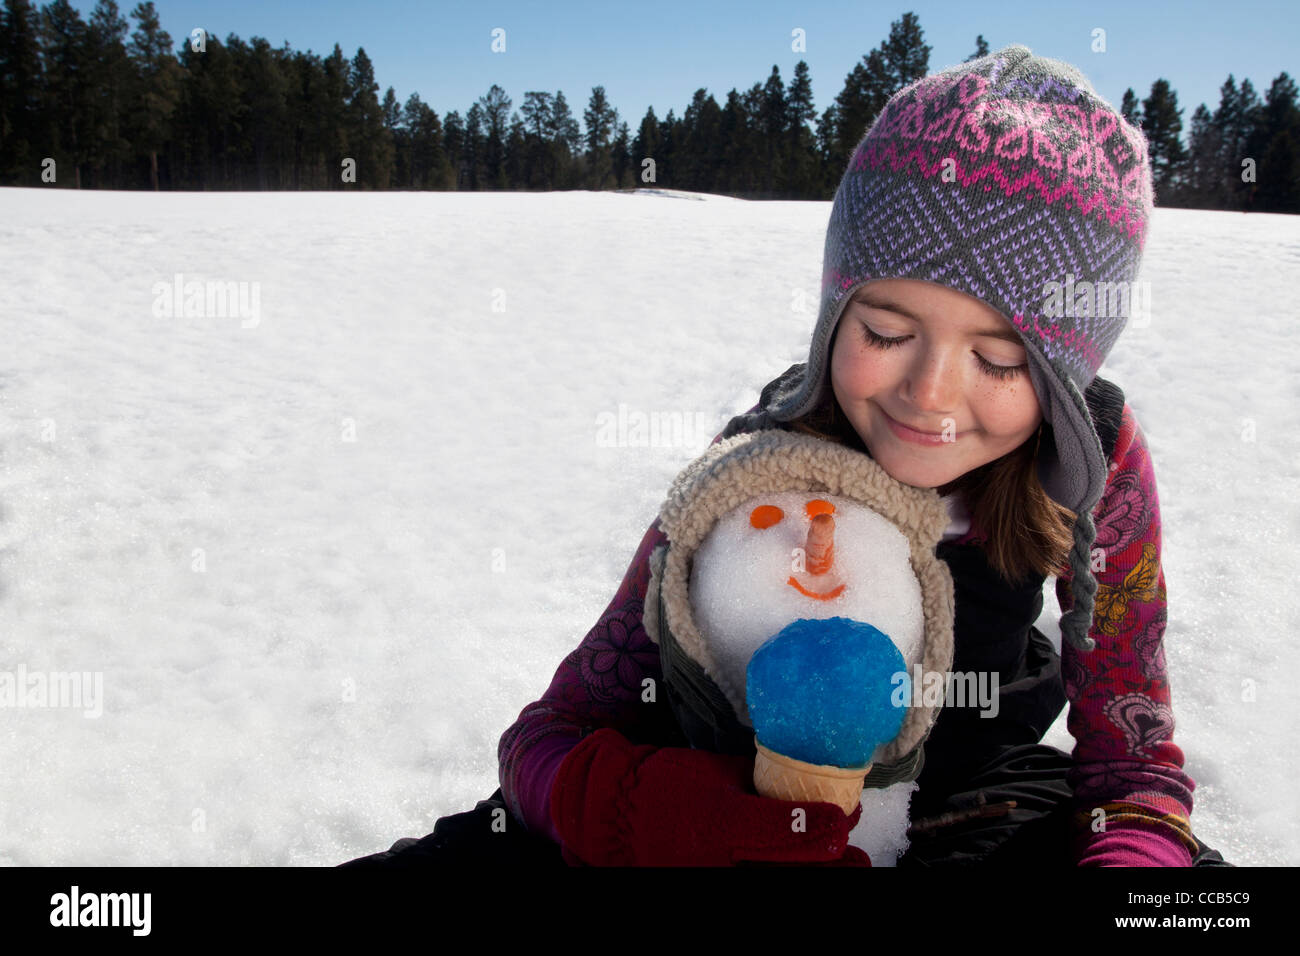 Girl making a snowman on a sunny winter day. - Stock Image